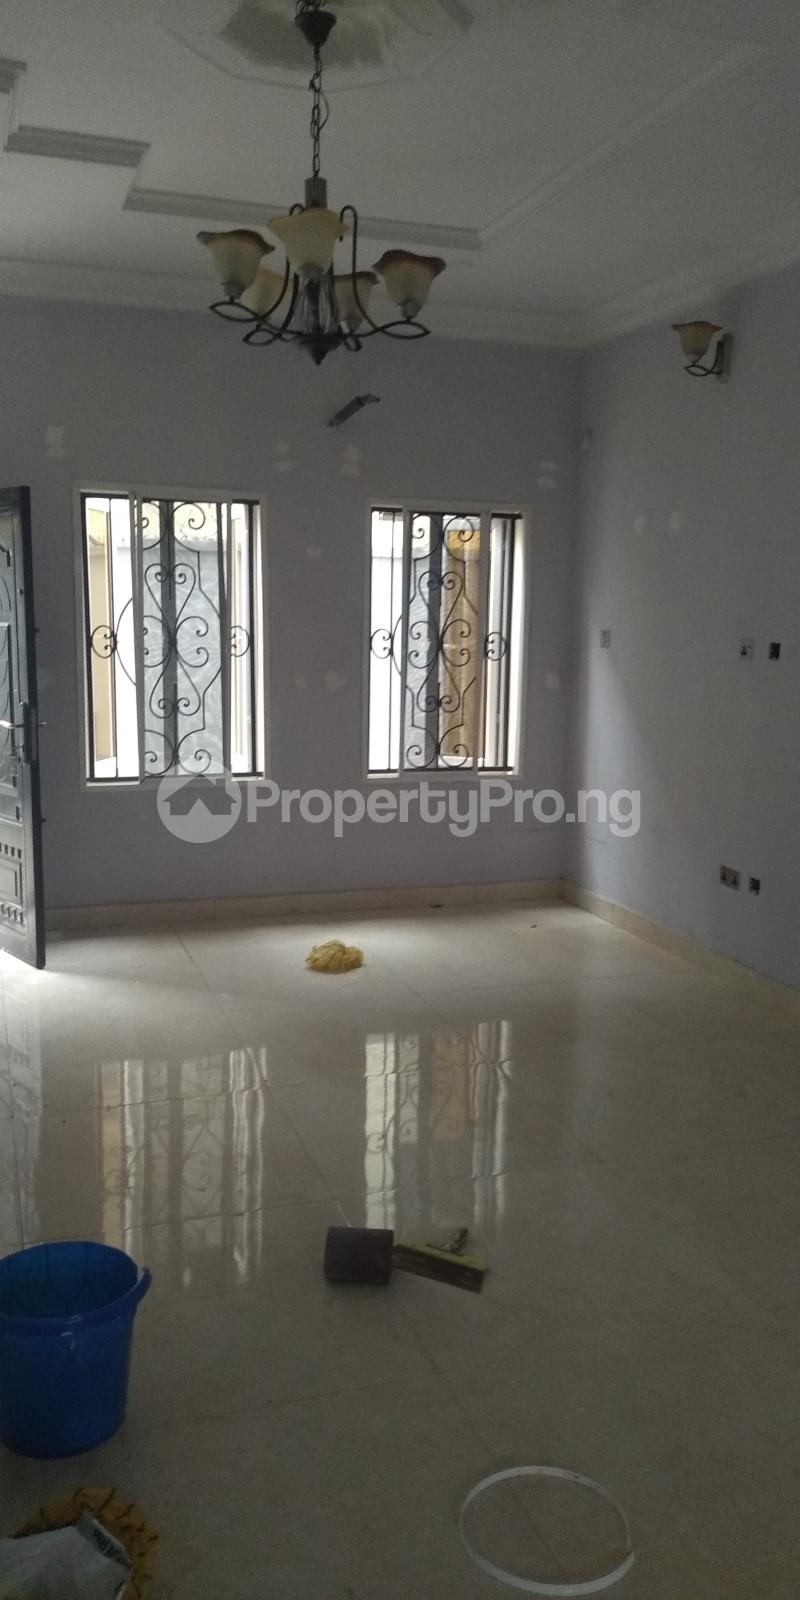 3 bedroom Flat / Apartment for rent mende Mende Maryland Lagos - 1